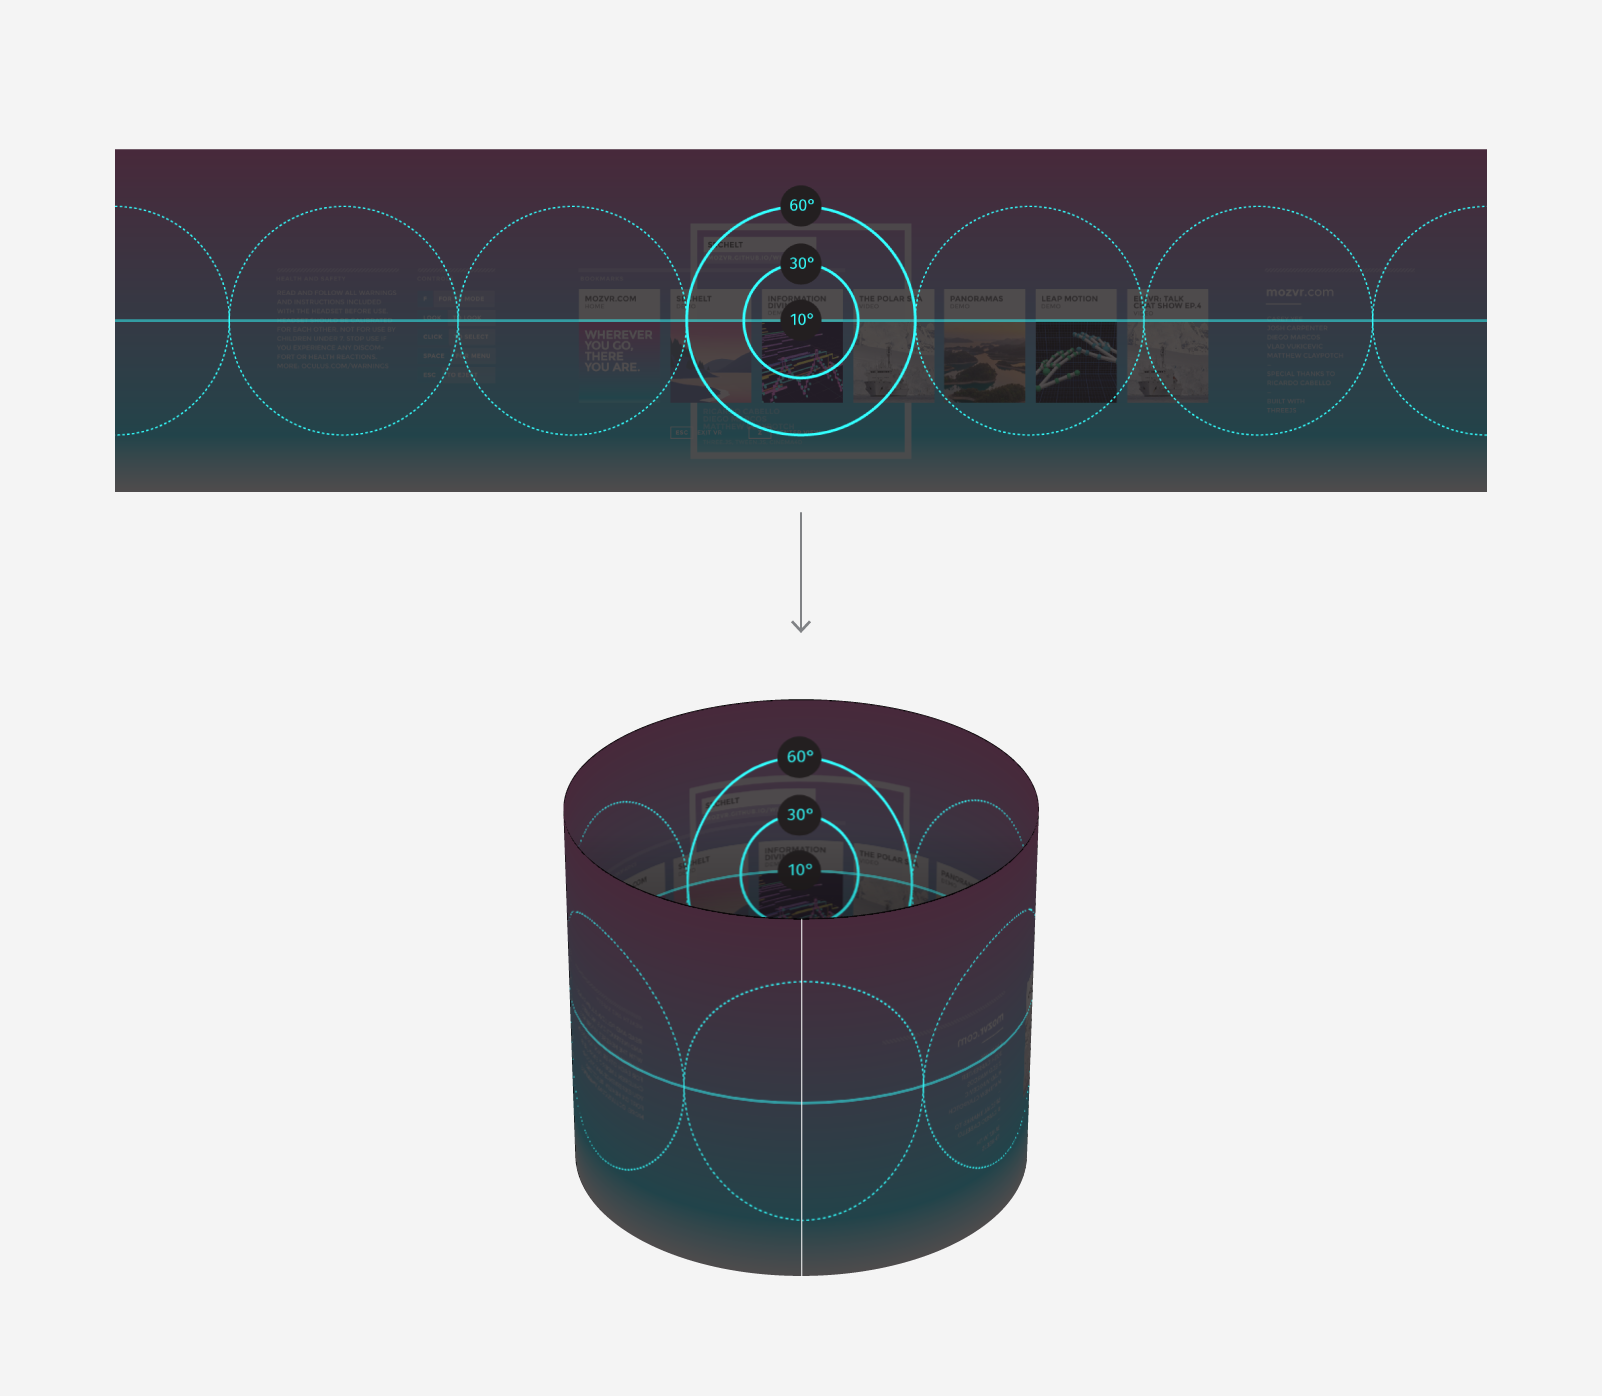 Mockup of a 360x90cm layout template with overlays for important field-of-view measurements.